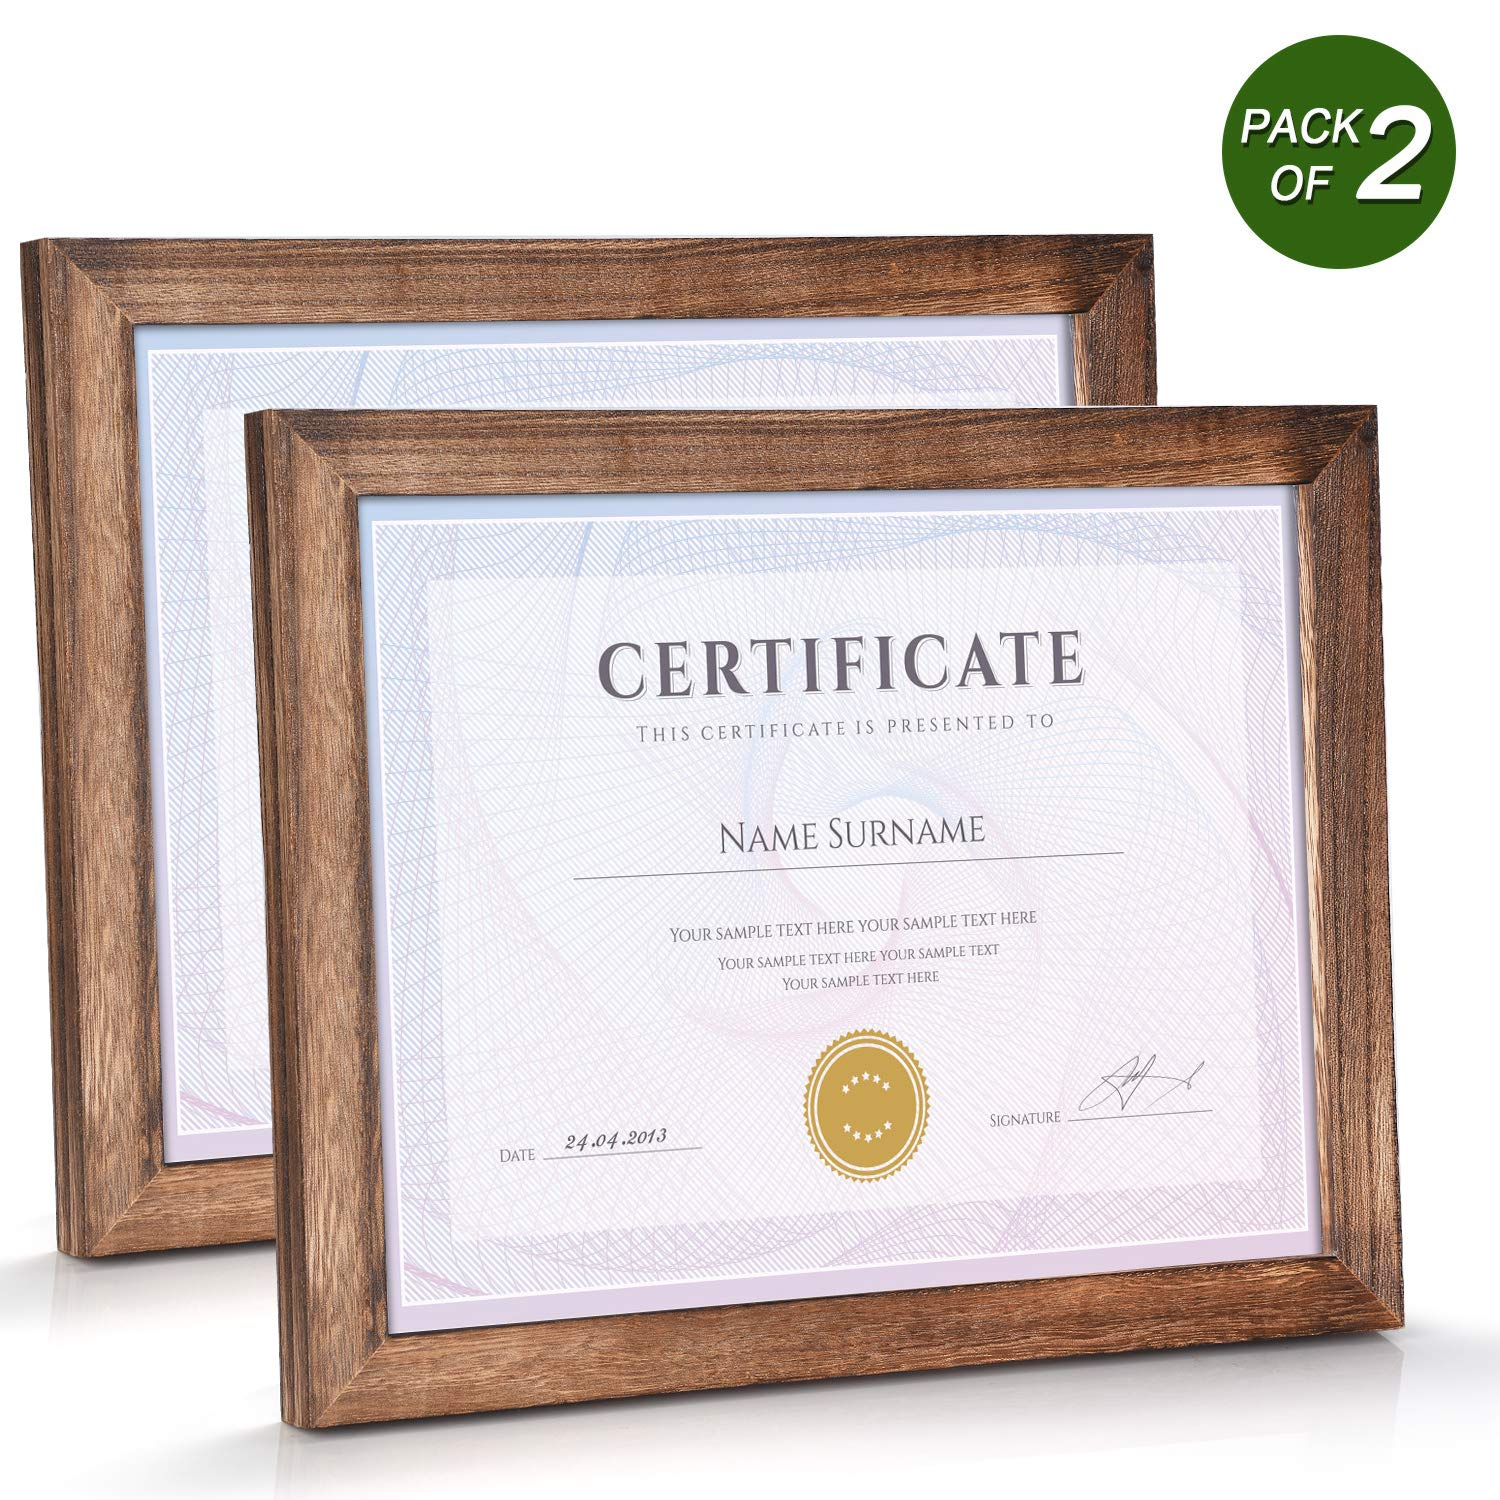 Emfogo 8.5x11 Certificate Frames Rustic Wood Document Frames with High Definition Glass for Wall or Tabletop Display Set of 2 Carbonized Black